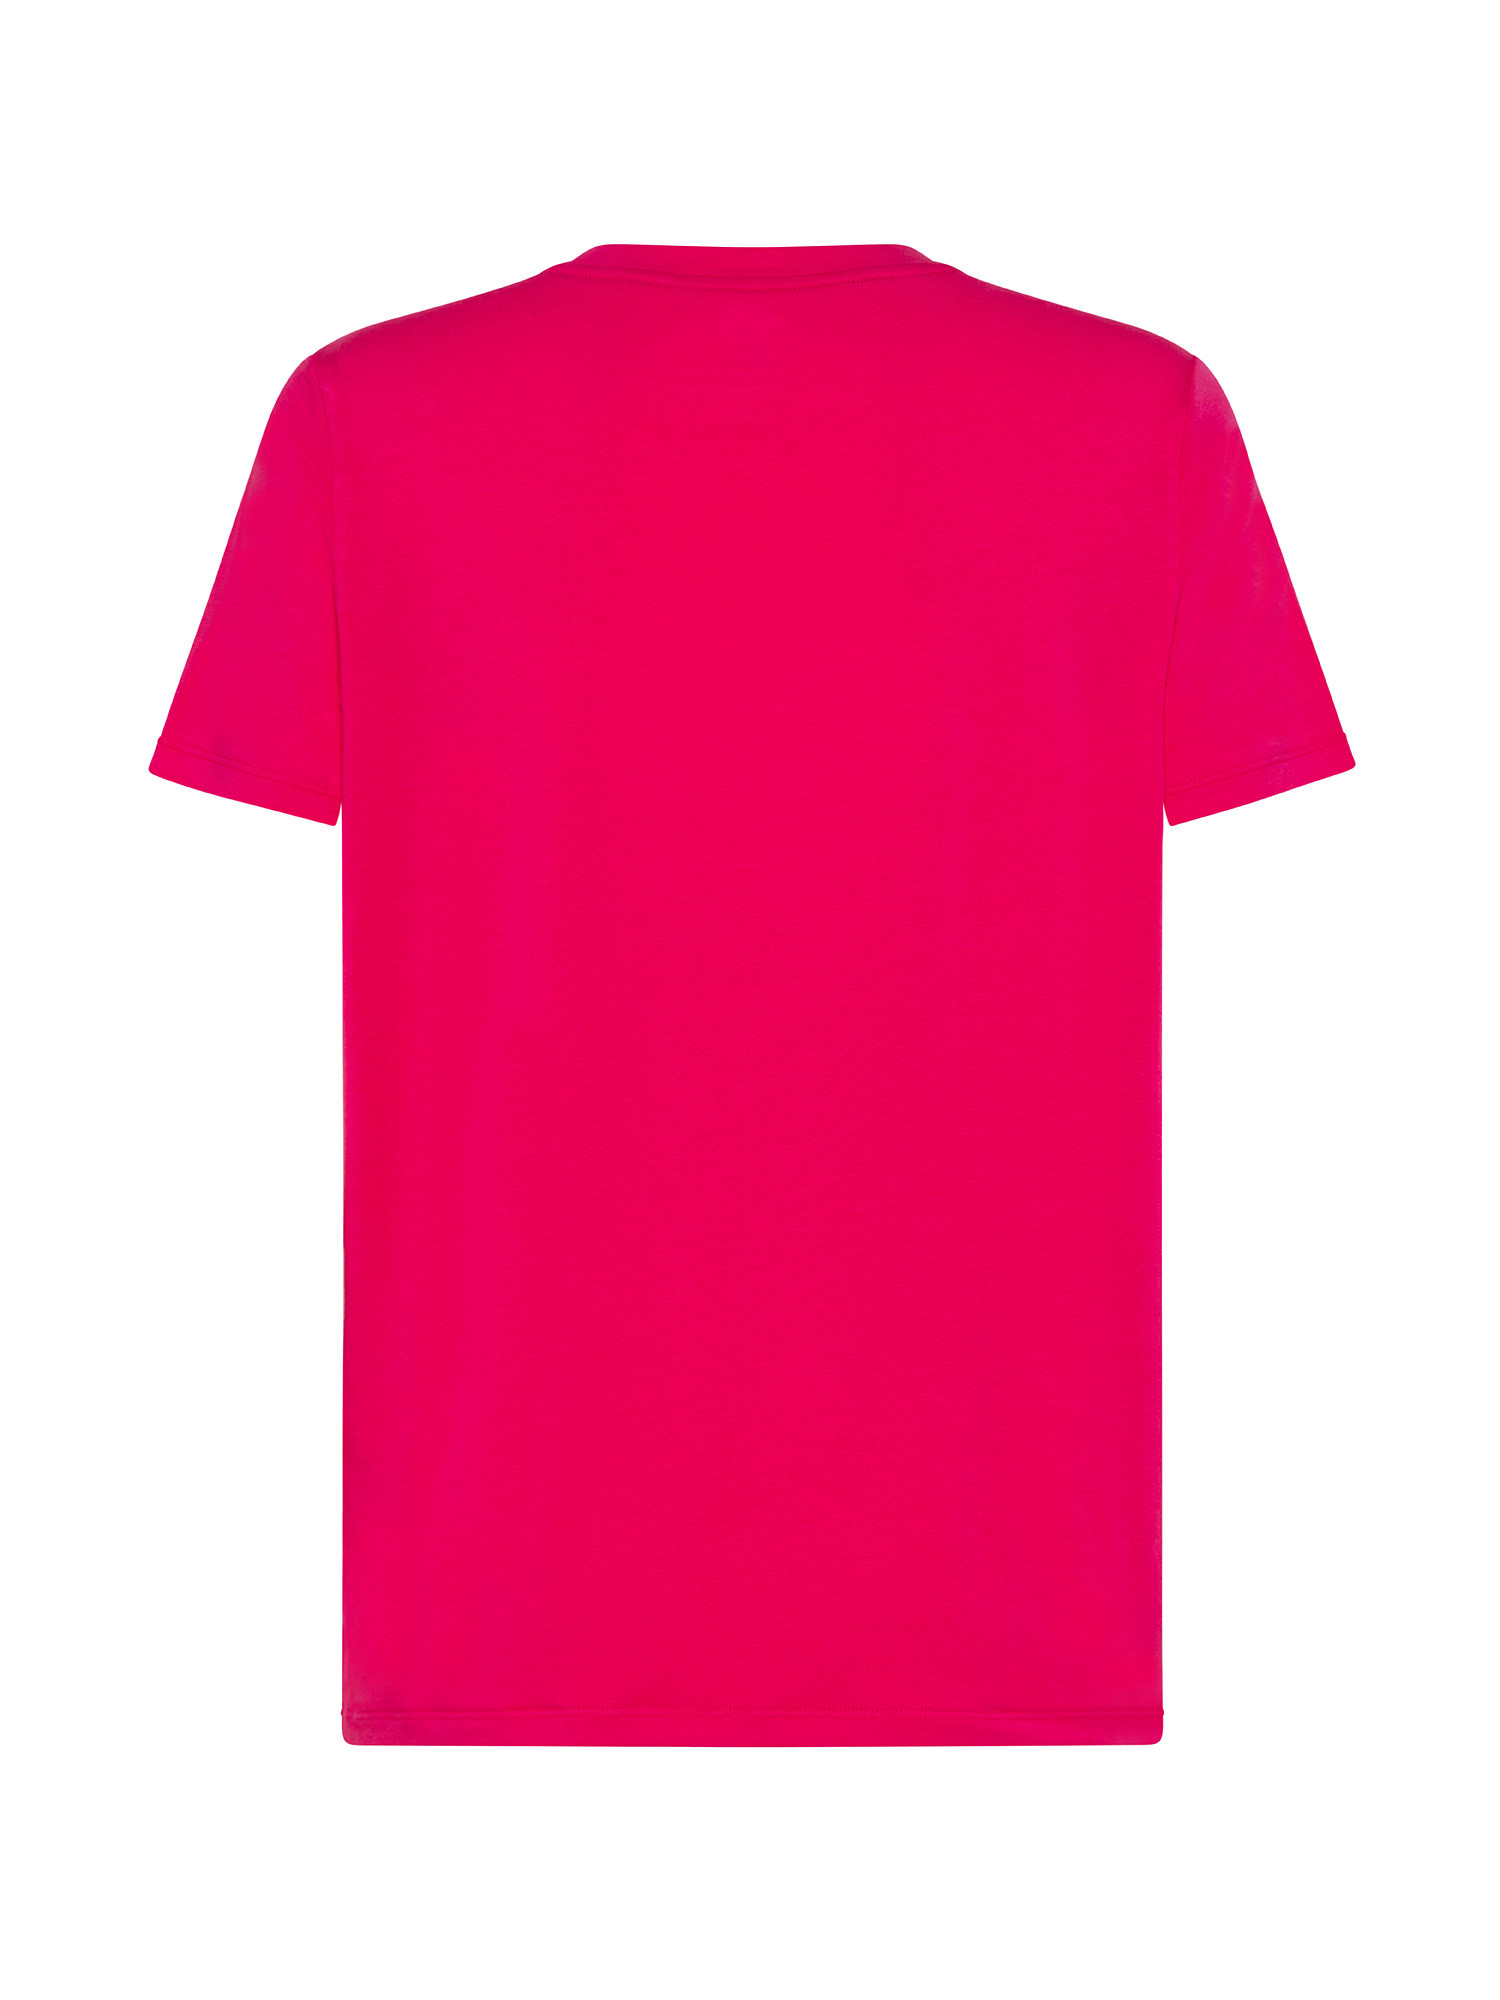 T-shirt con logo two tone, Rosso, large image number 1